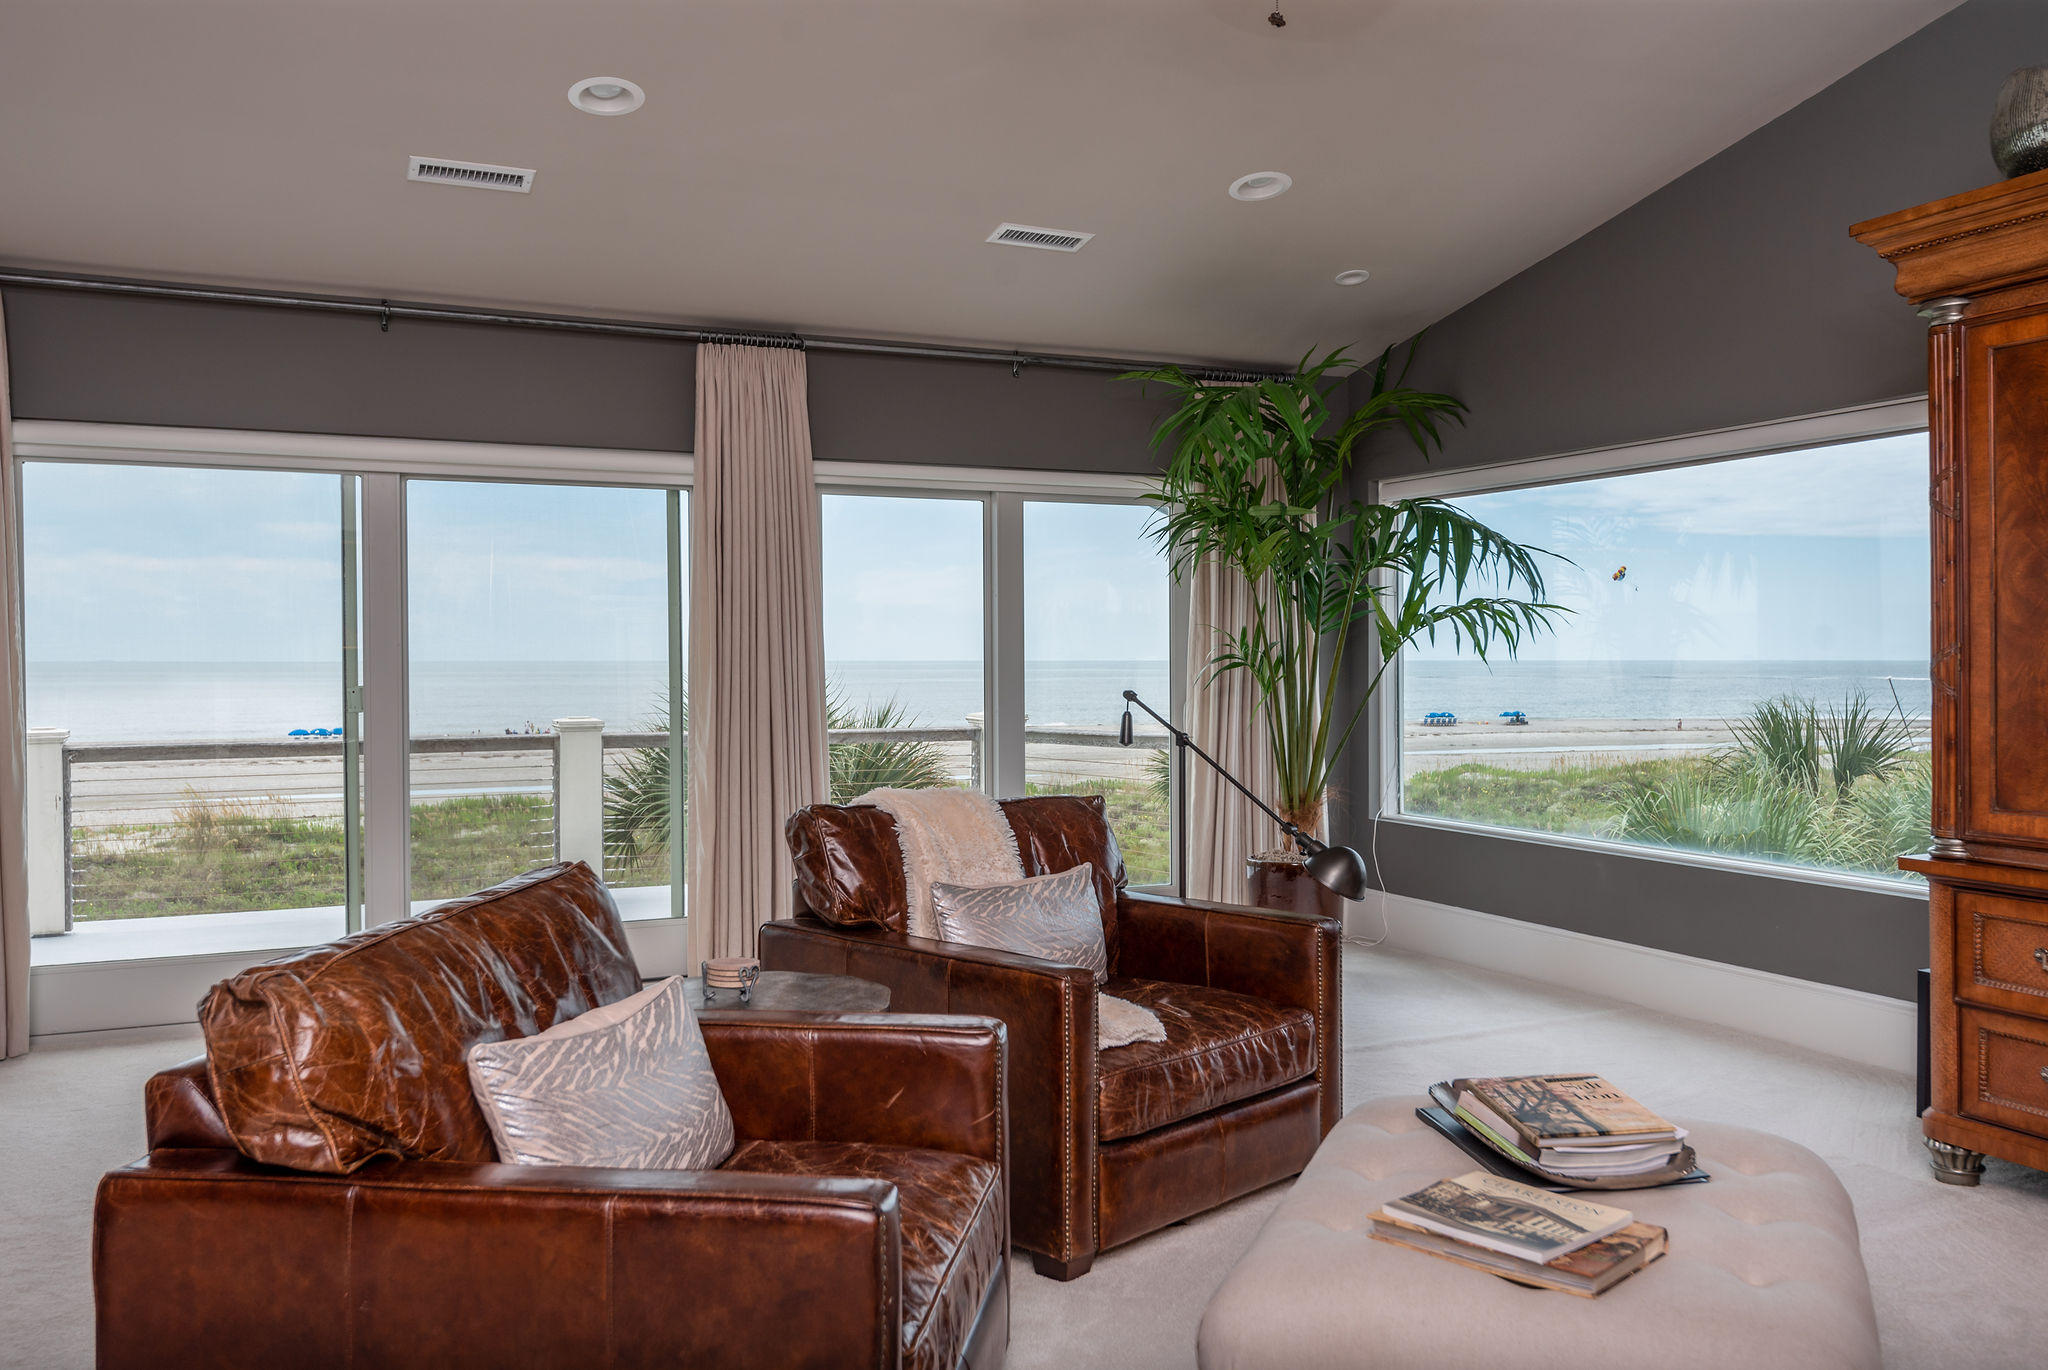 Isle of Palms Homes For Sale - 2 50th, Isle of Palms, SC - 45